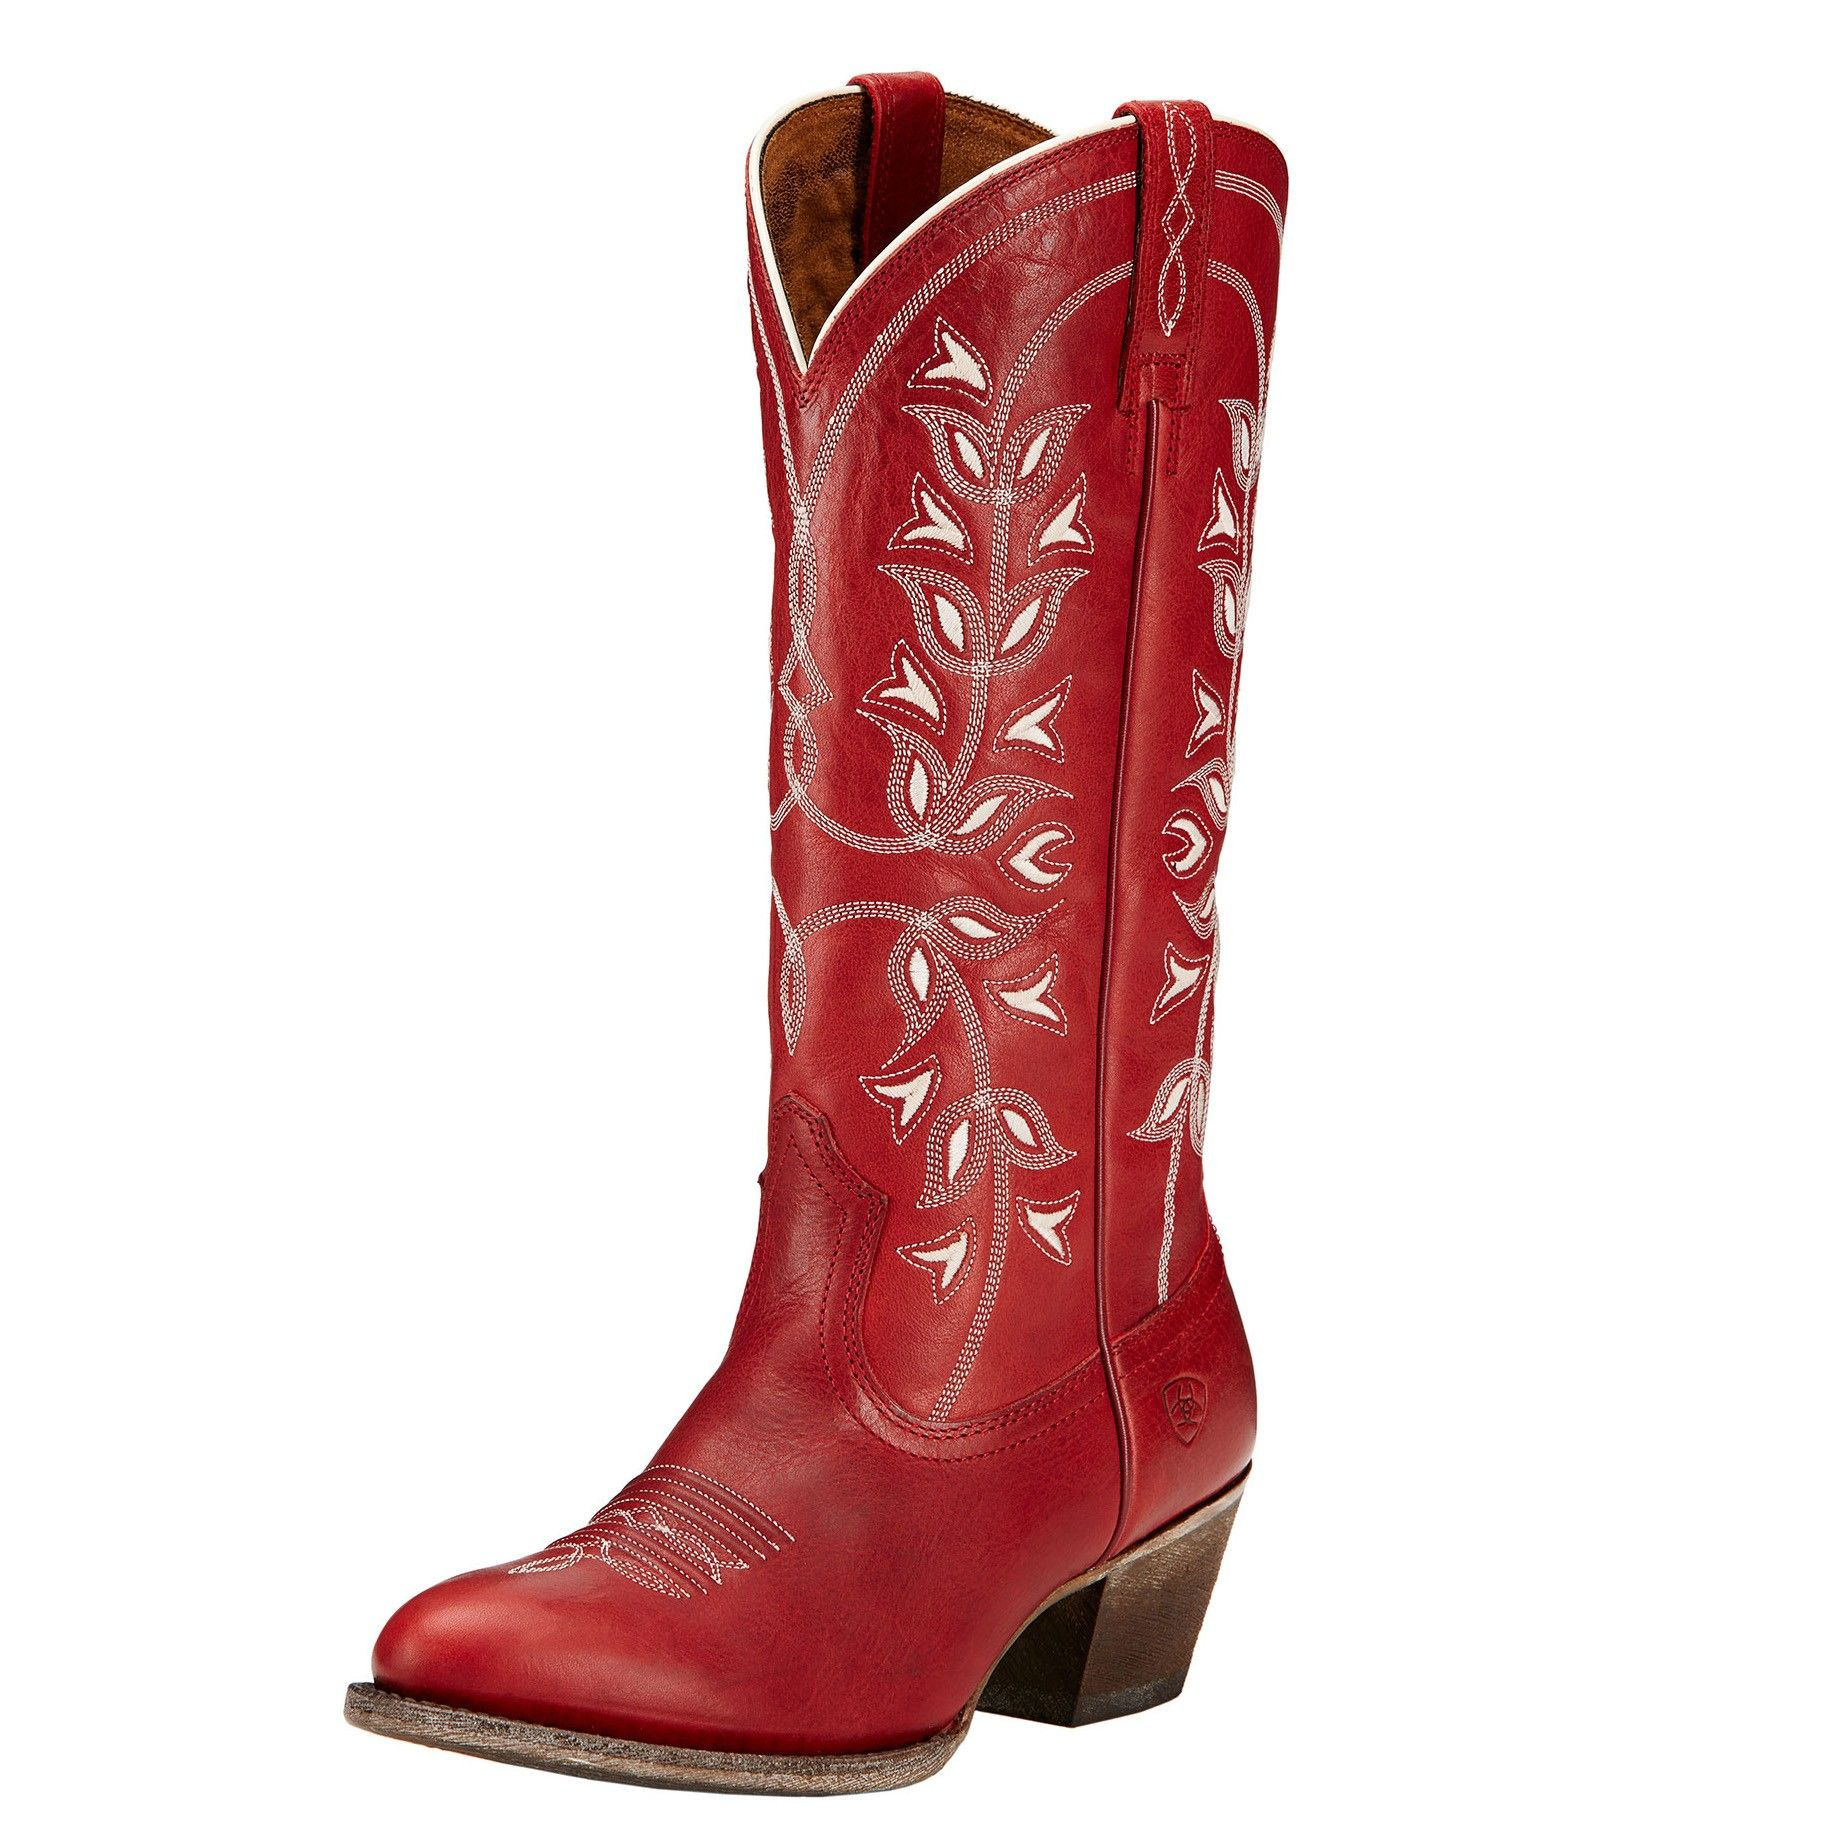 74212_ariat-womens-cowgirl-boots-10017350-red-desert-holly-1.jpg ...